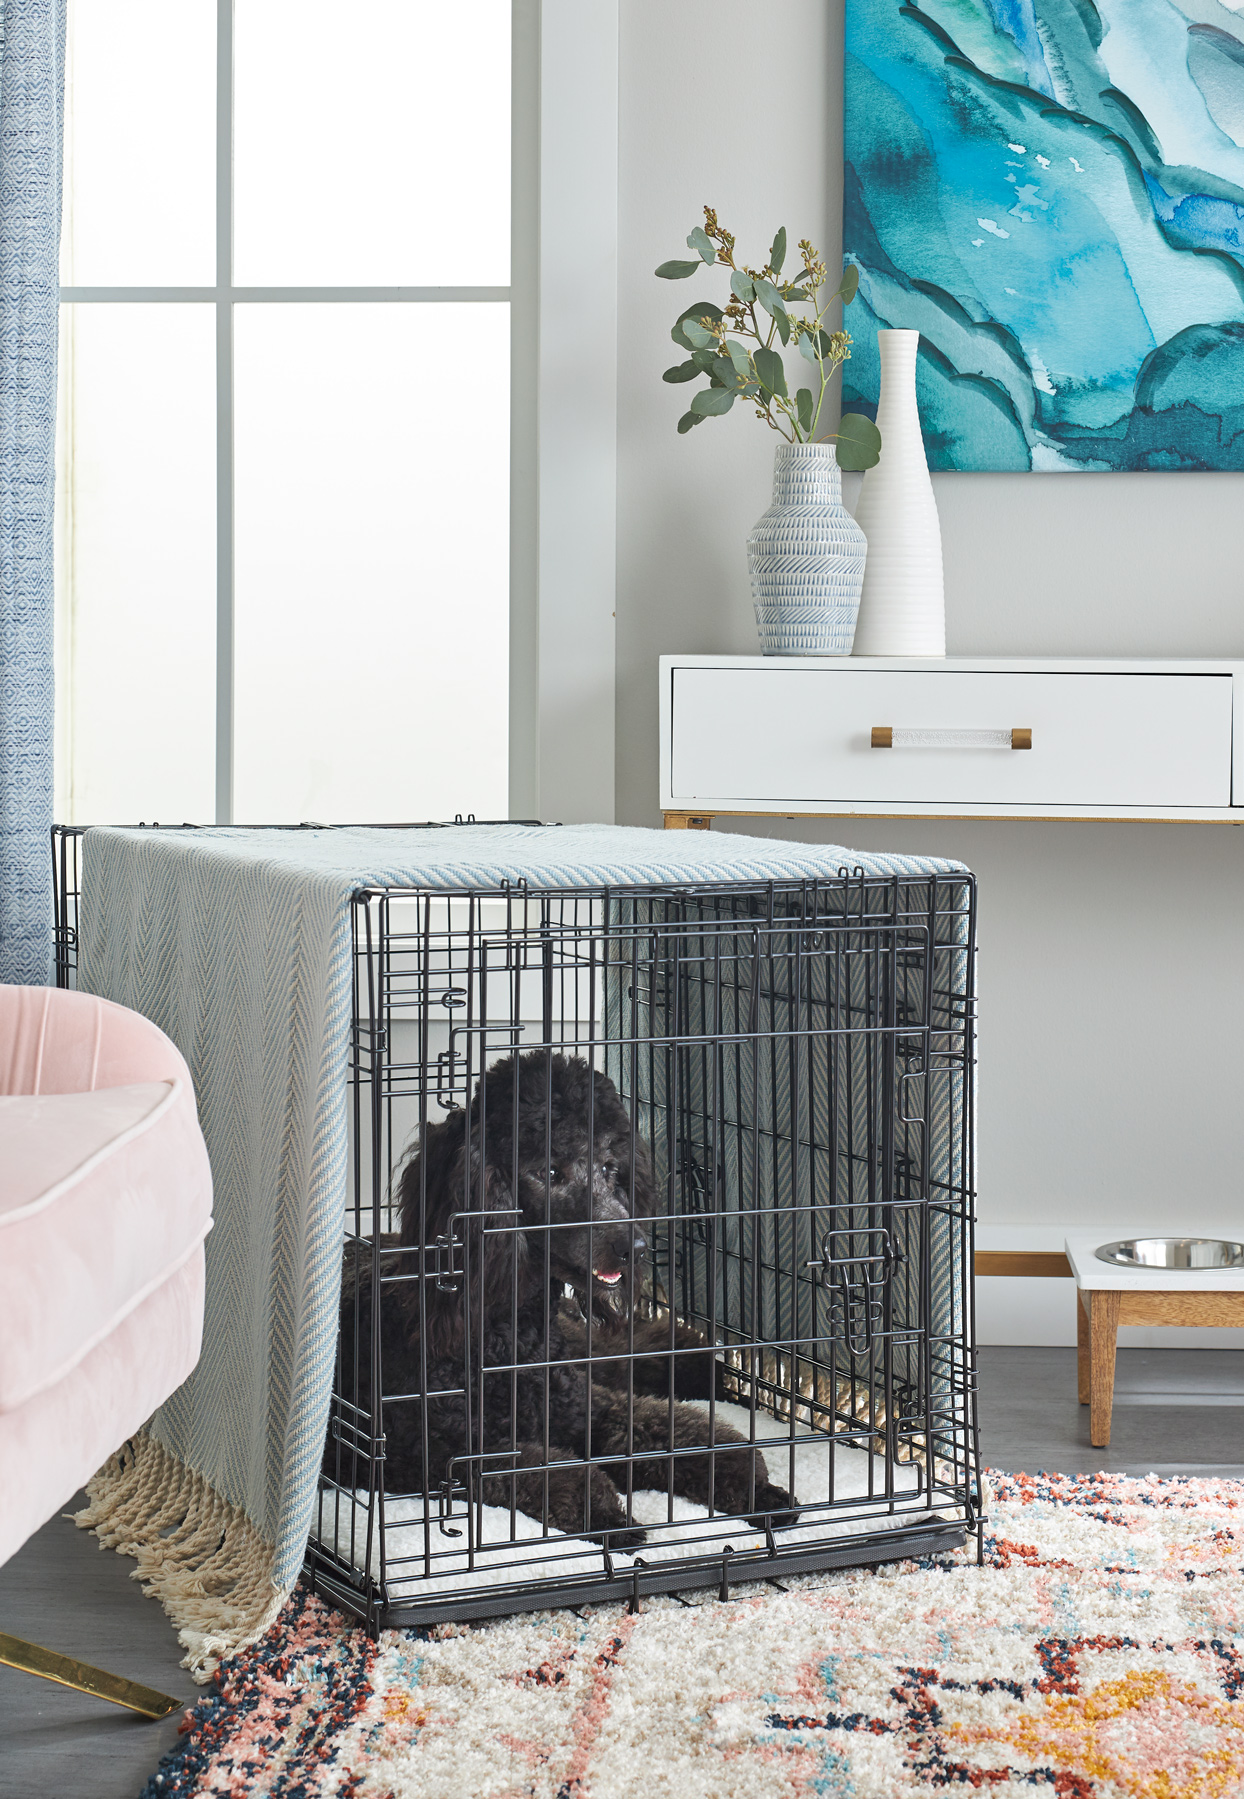 dog resting in metal dog crate